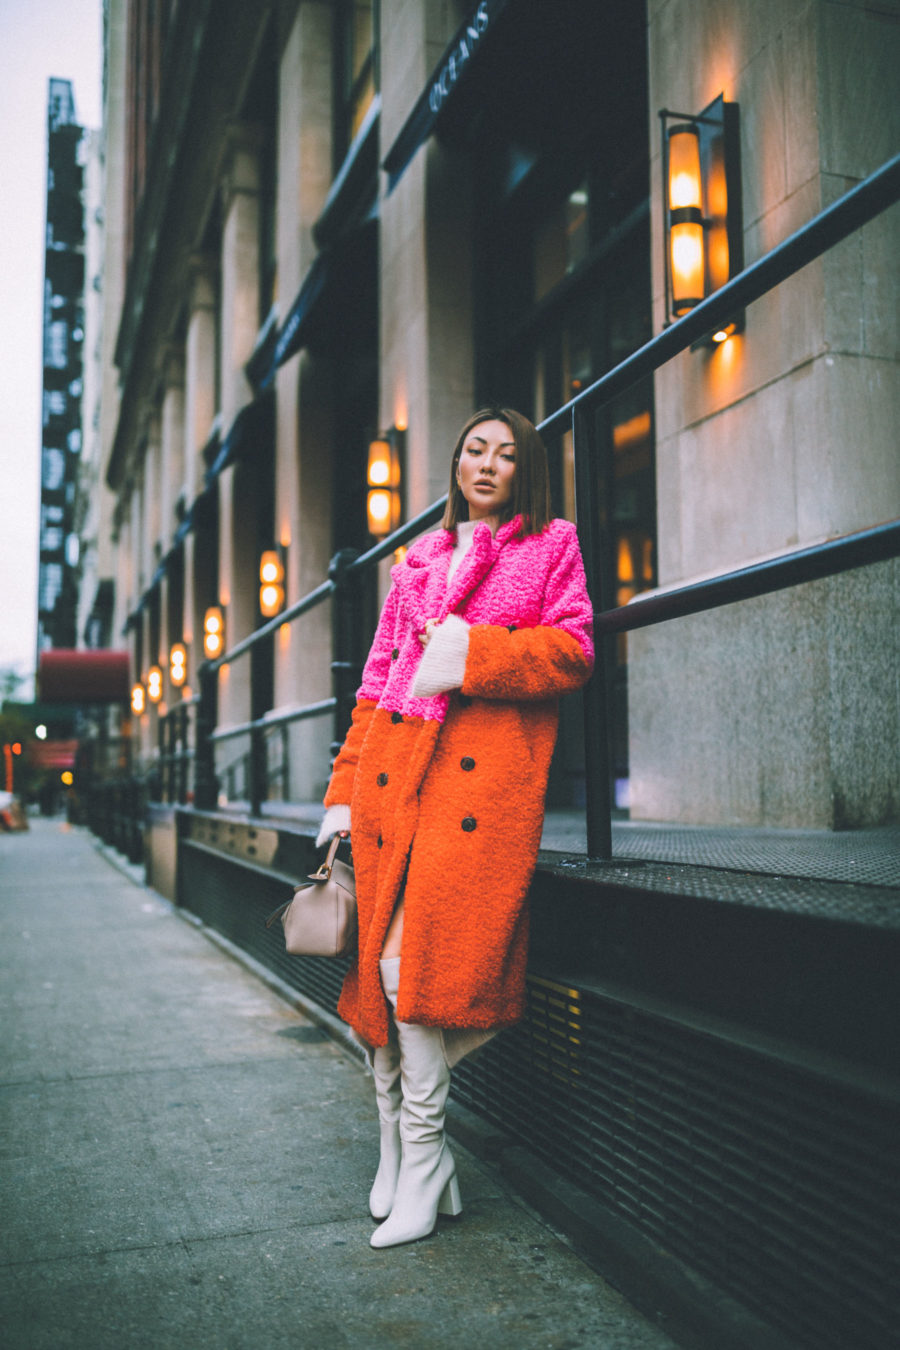 fashion blogger jessica wang shares holiday gift guide for the whole family wearing colorblock coat loewe puzzle bag and white boots // Notjessfashion.com